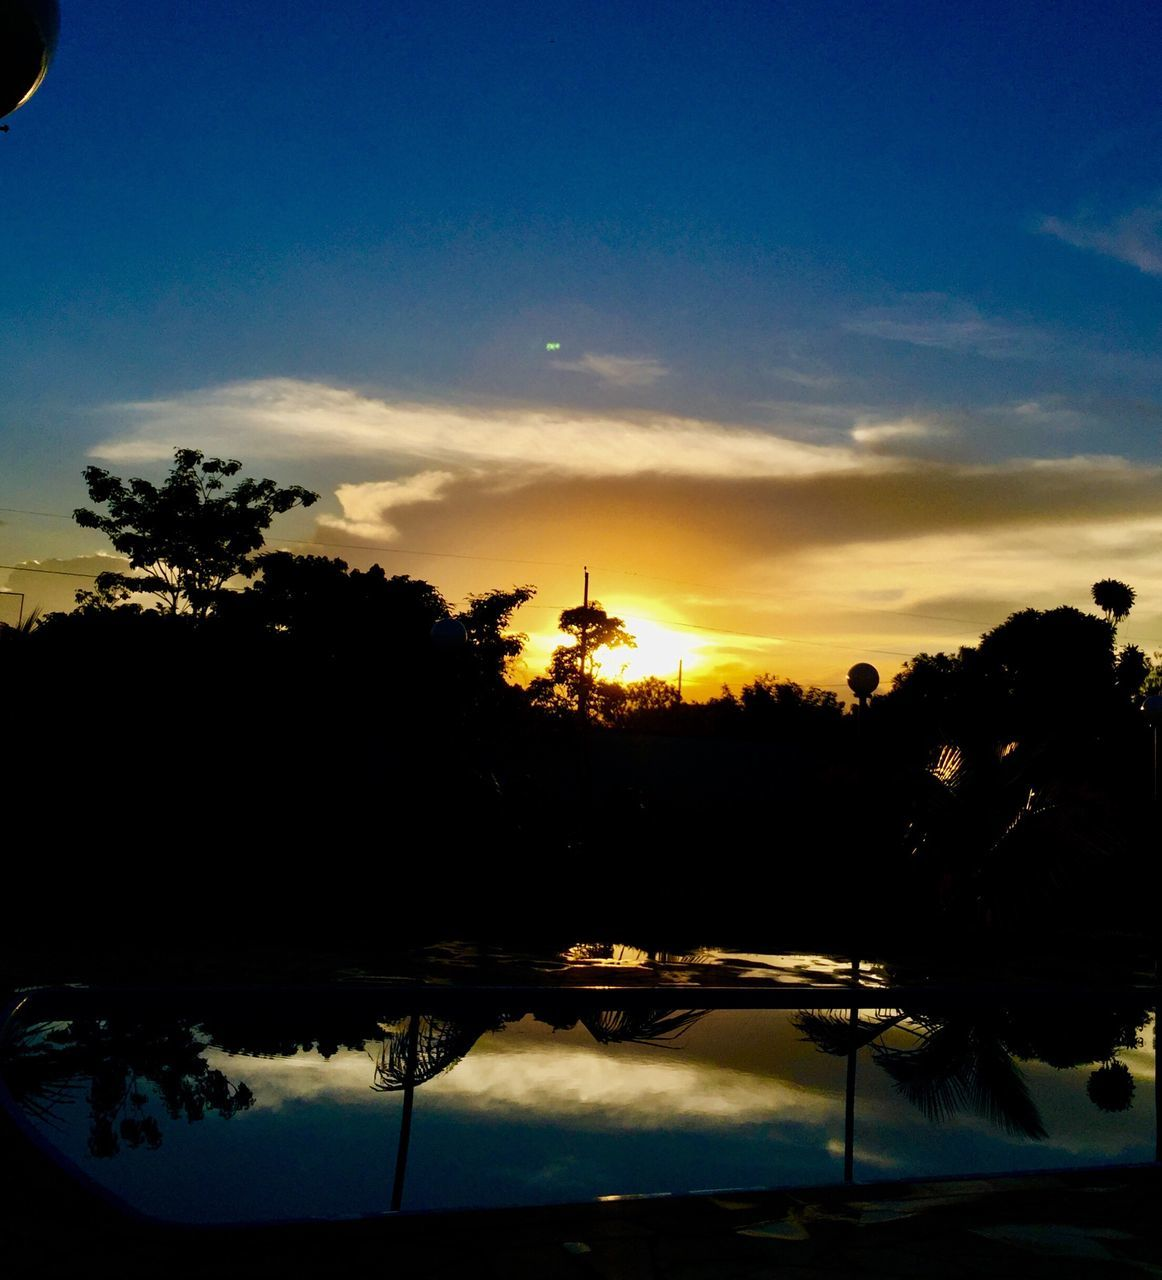 tree, sunset, silhouette, beauty in nature, scenics, sky, no people, nature, tranquil scene, tranquility, outdoors, palm tree, water, day